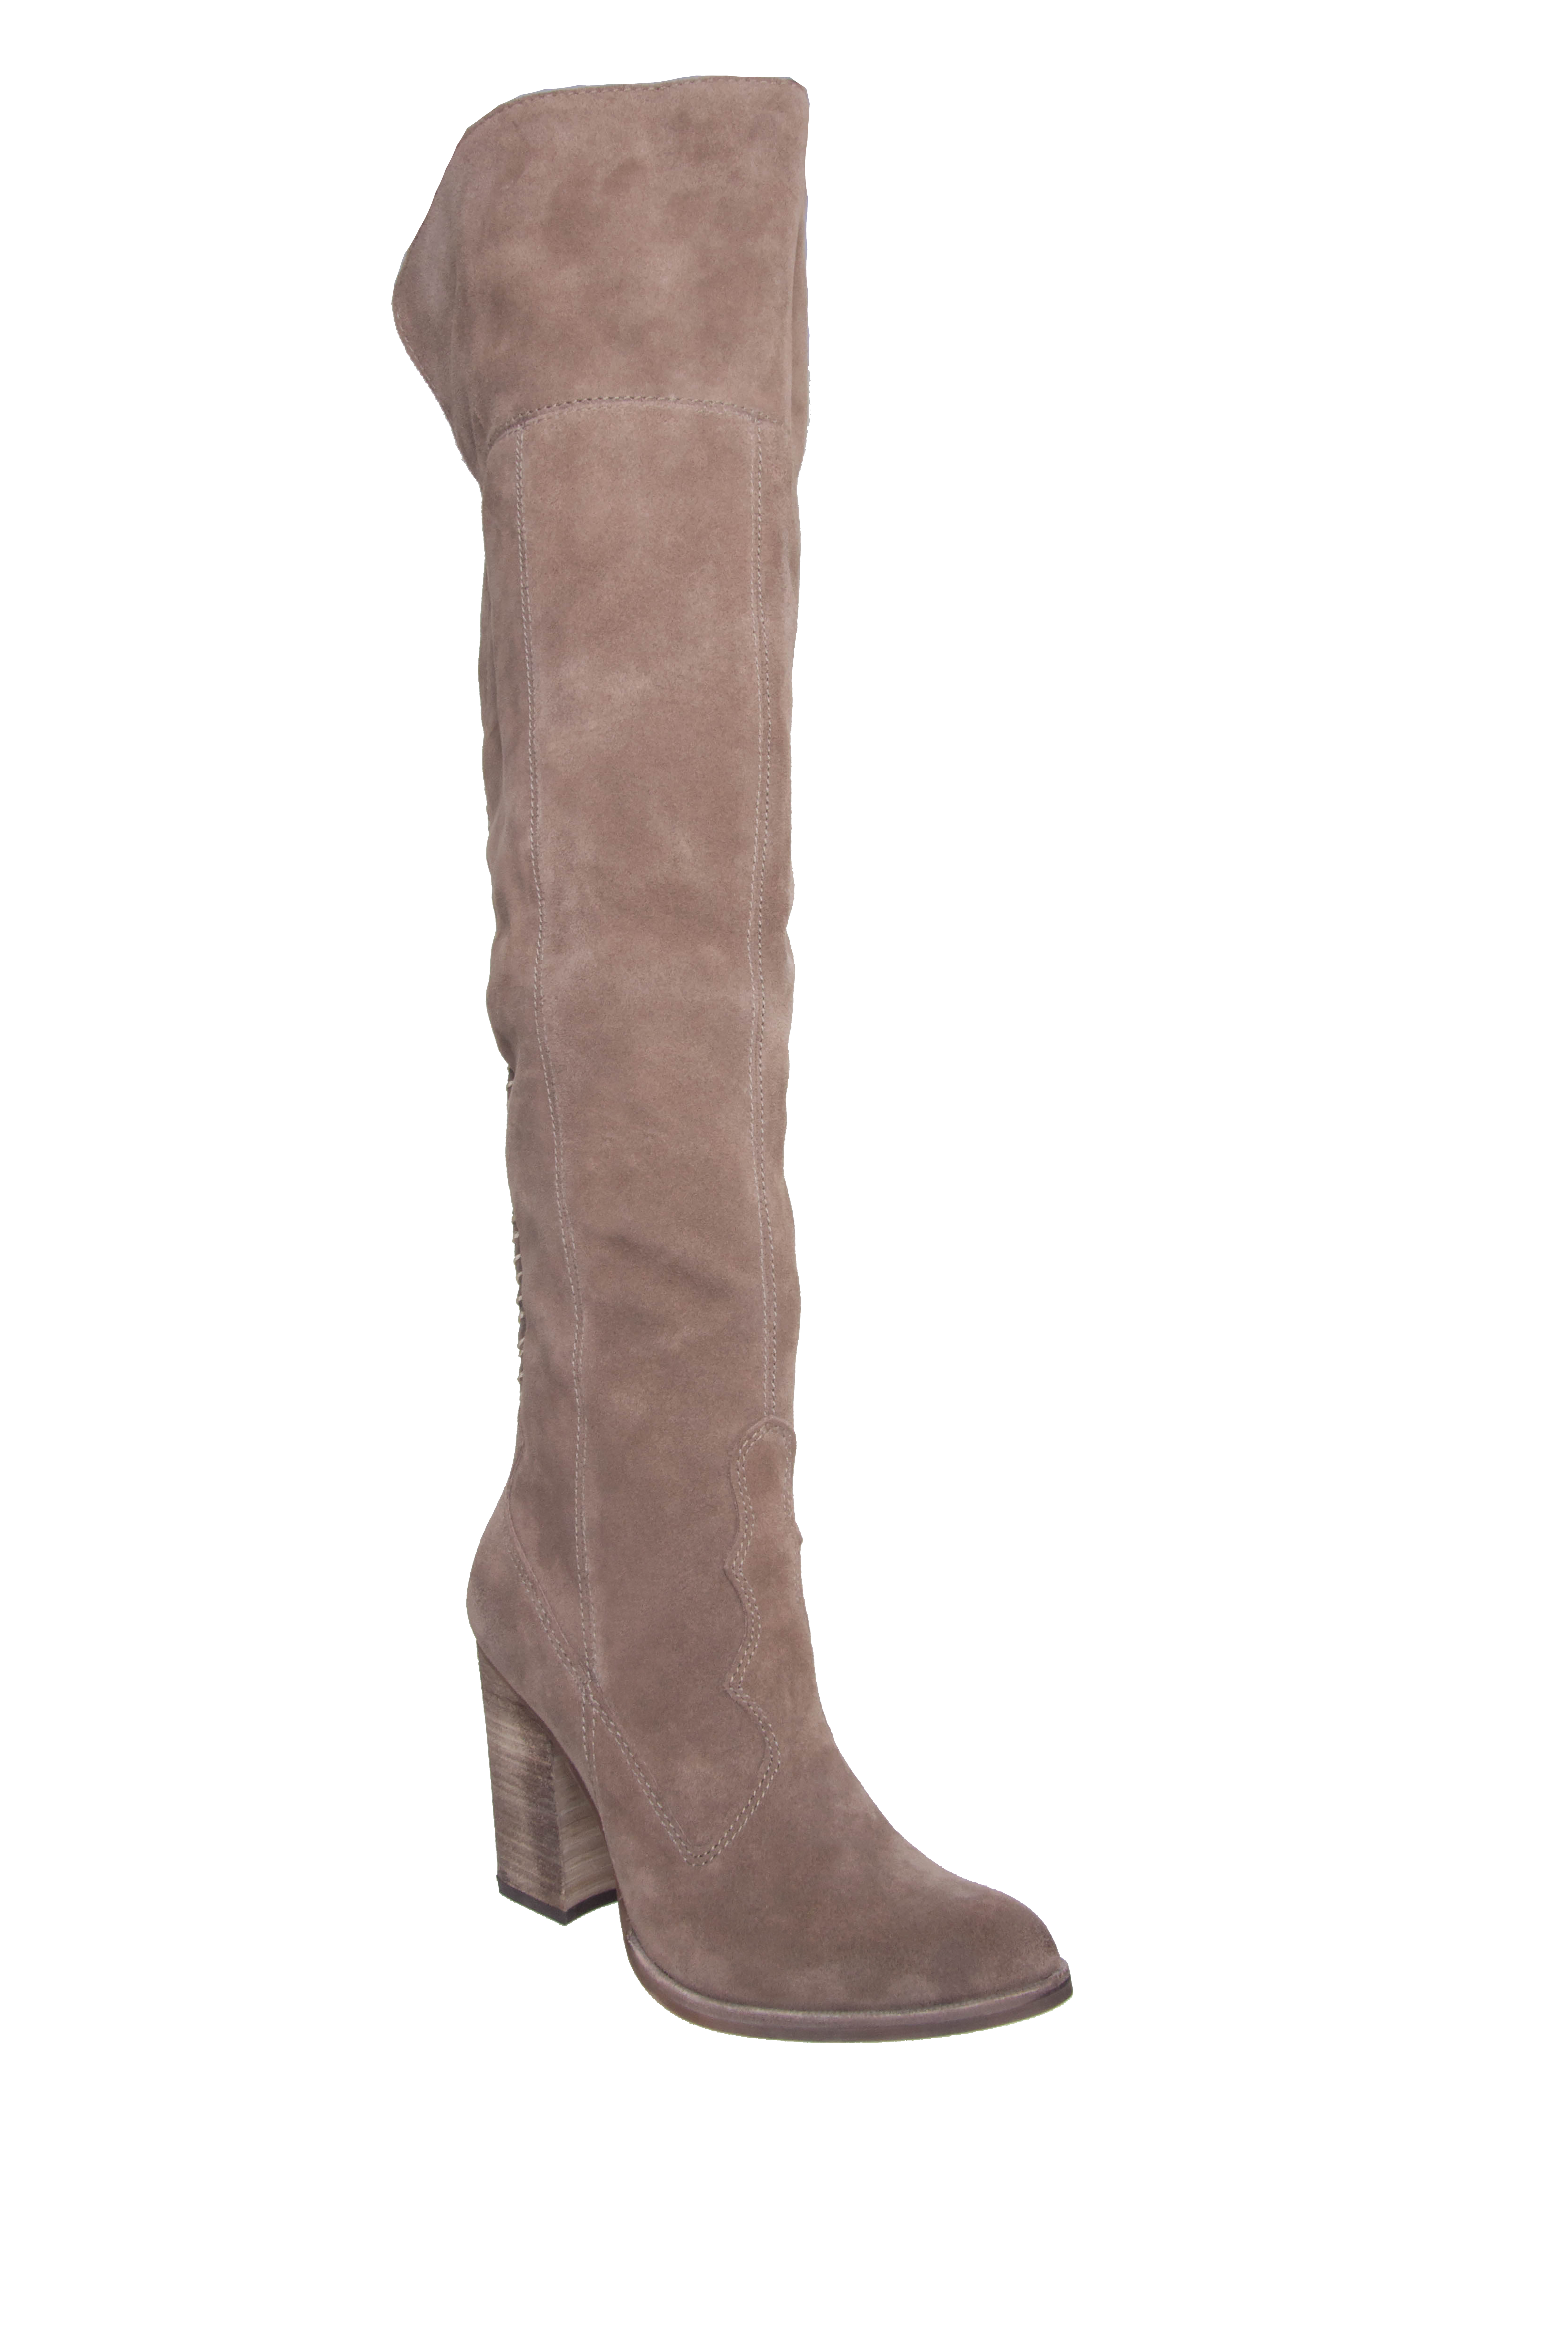 Dolce Vita Cliff Knee High Boots - Taupe